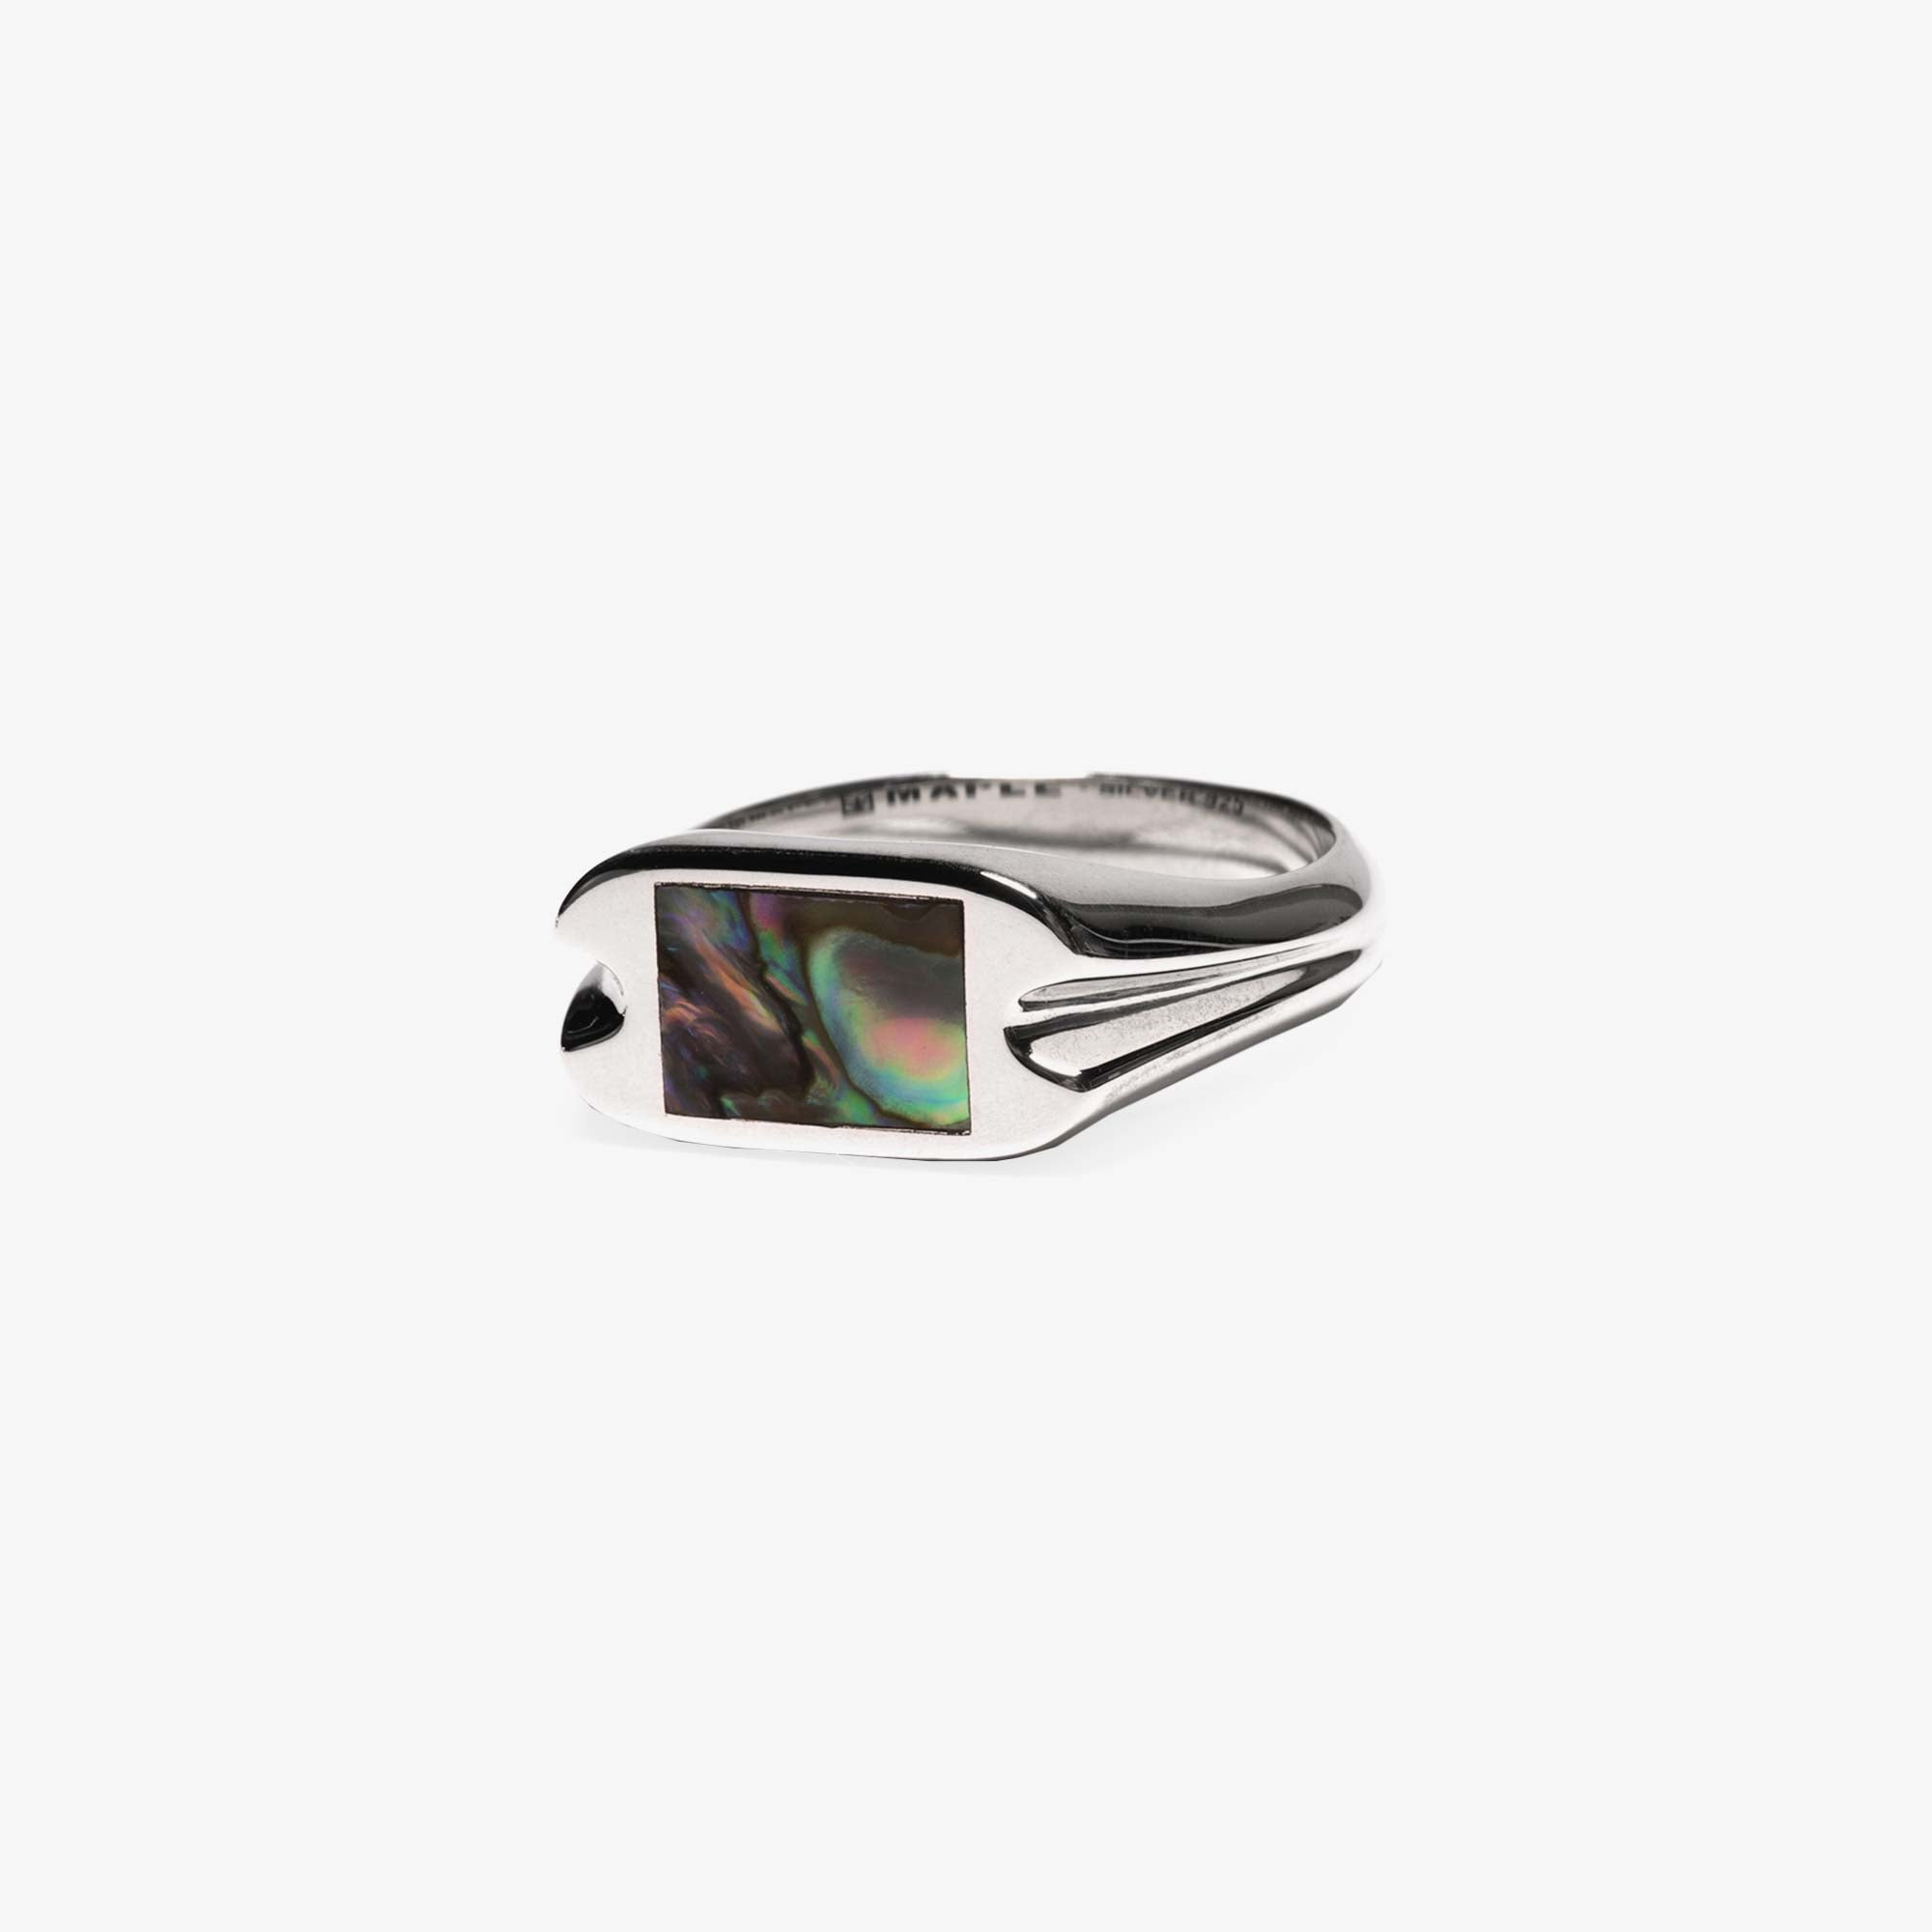 Maple Danny Signet Ring - Silver / Abalone Shell 2